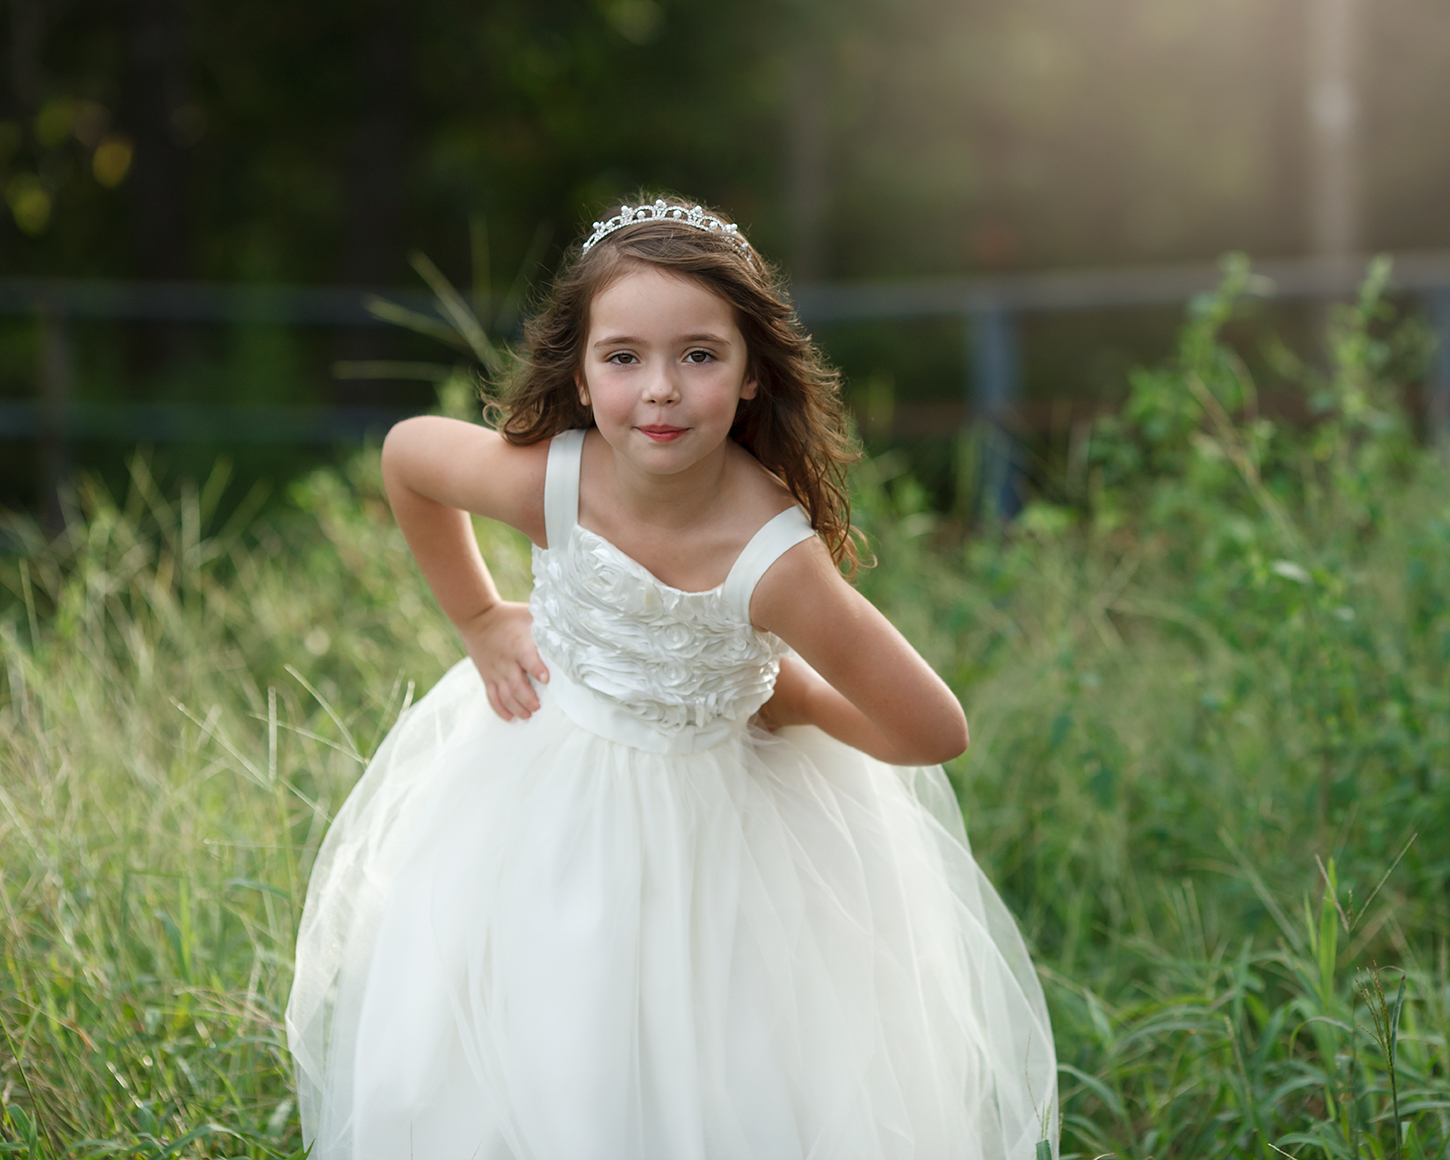 children's photography in Raleigh, Cary, Holly Springs